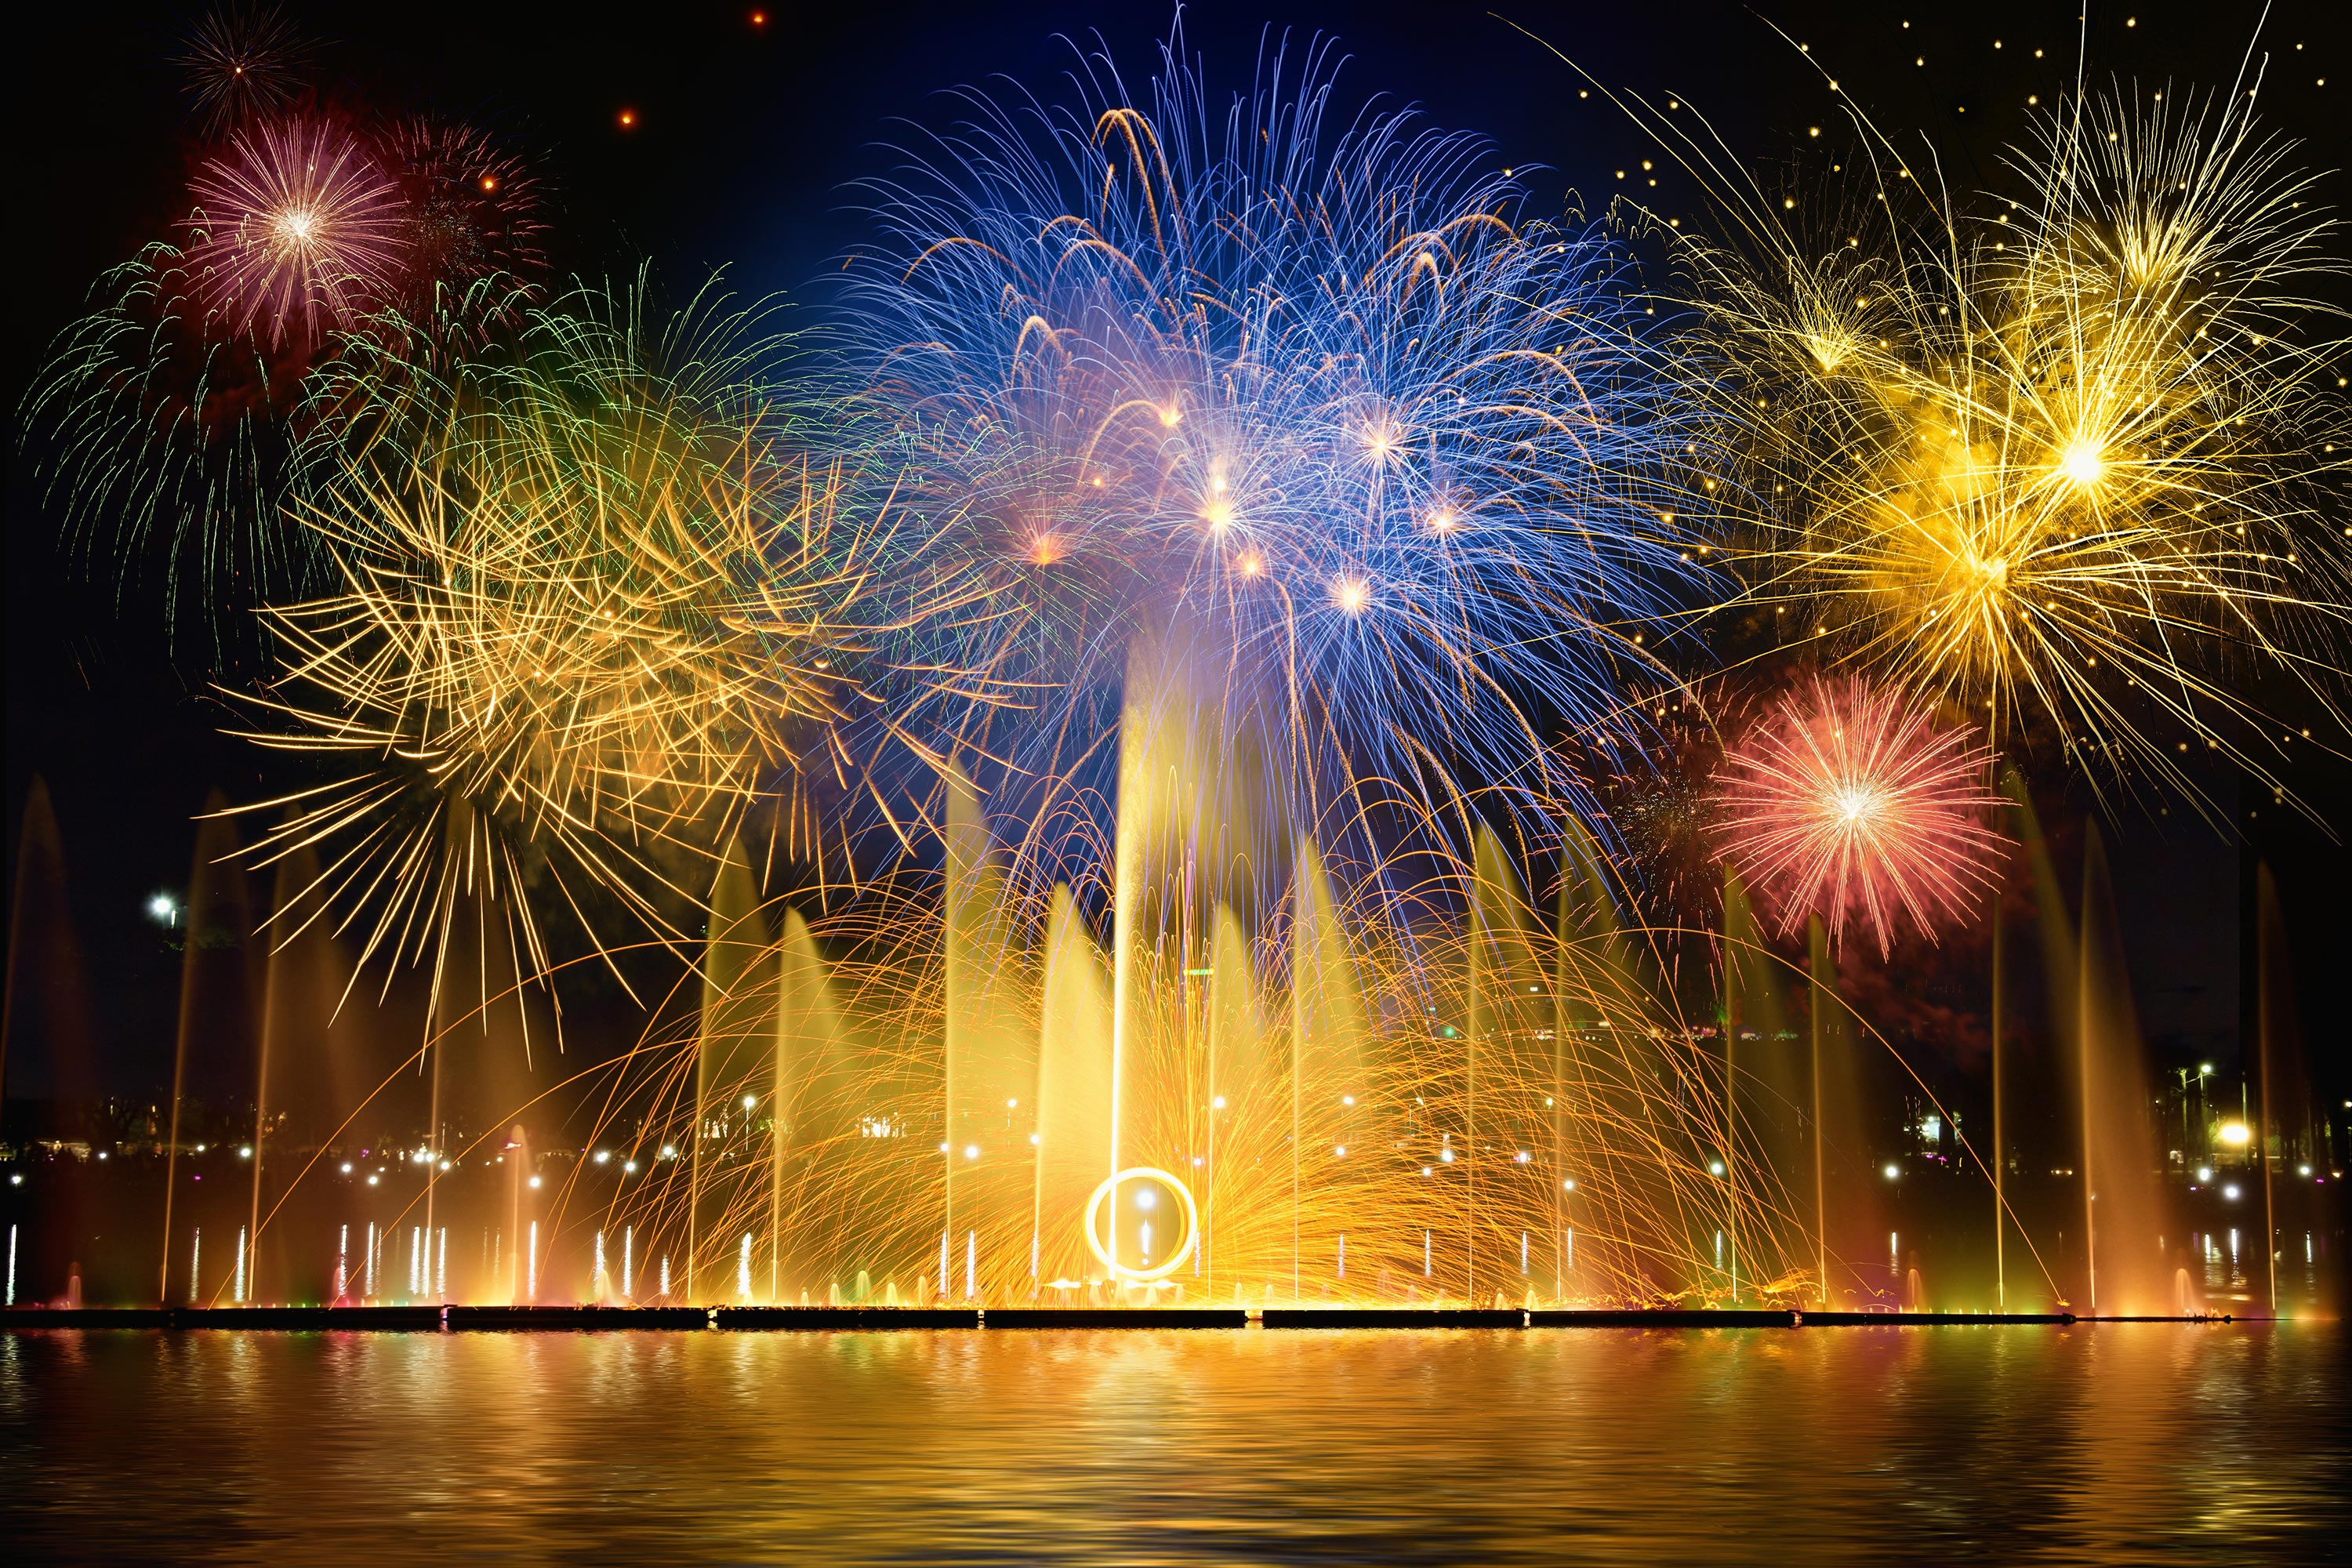 Amazing Fireworks 2020 Wallpapers - Wallpaper Cave